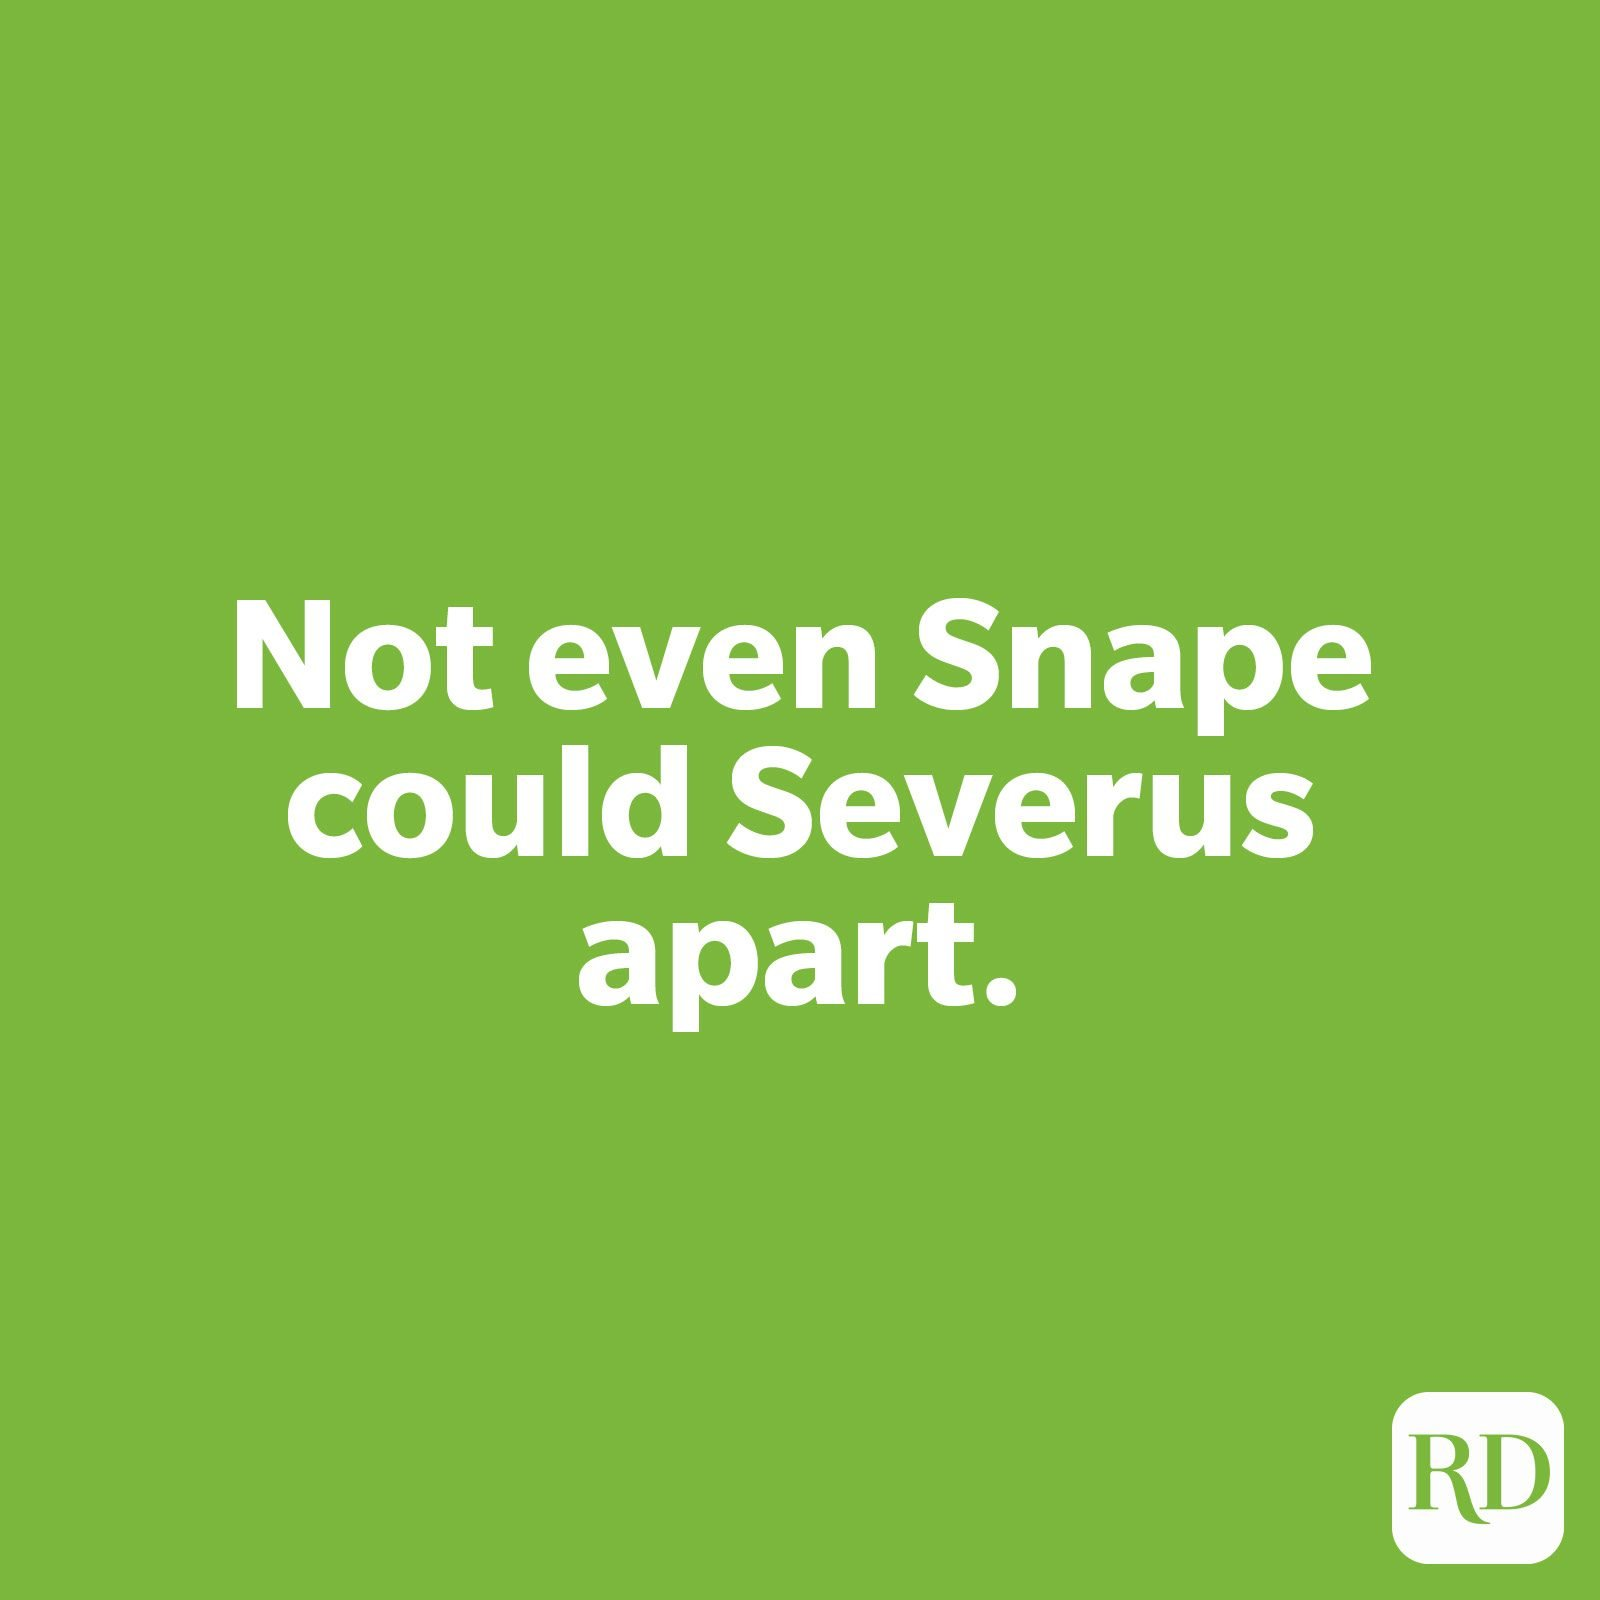 Not even Snape could Severus apart.